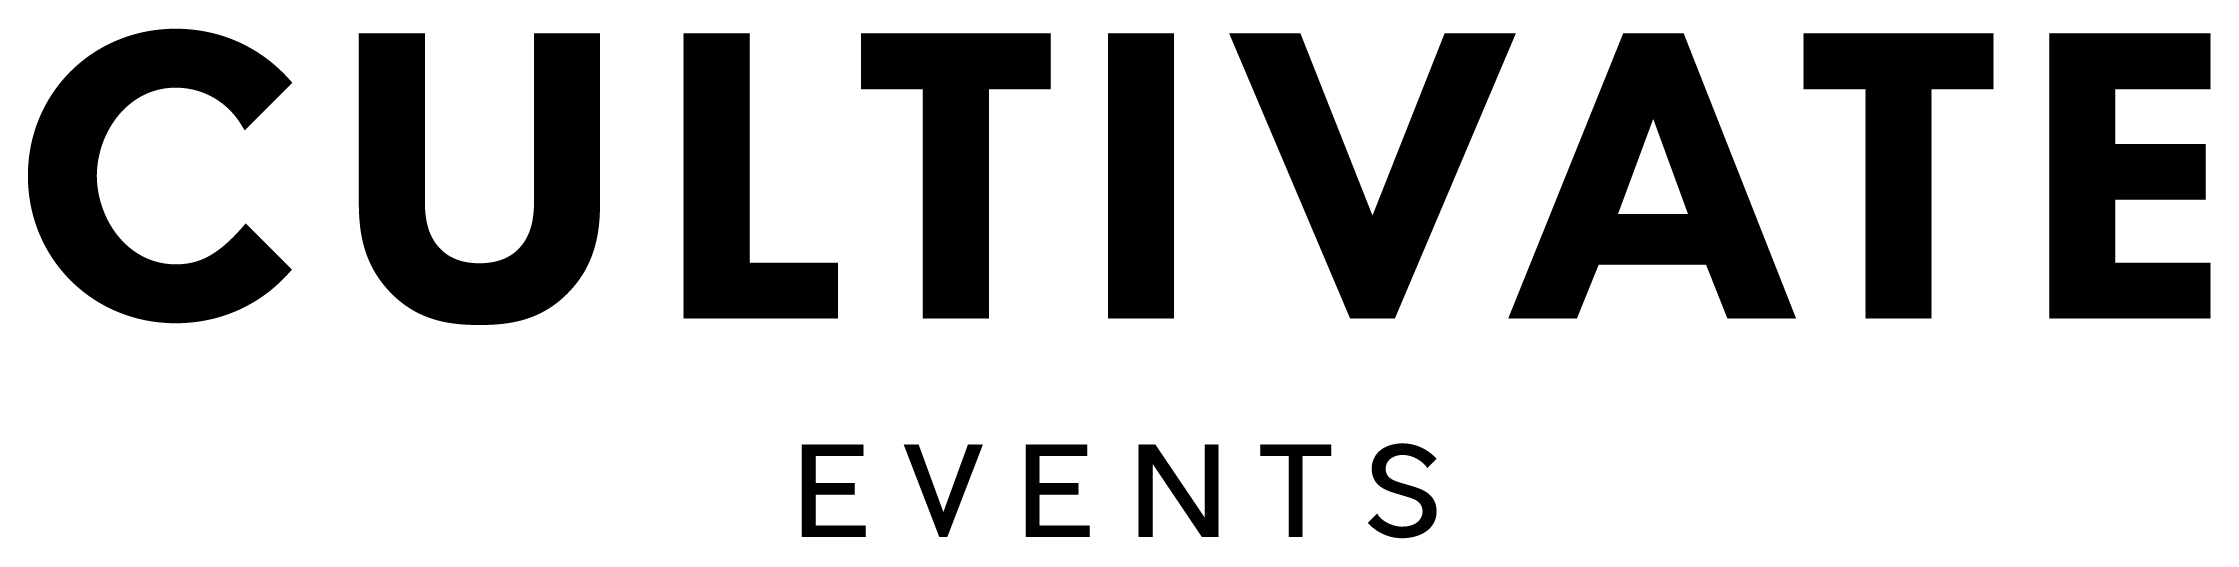 Cultivate-Events-Black.png